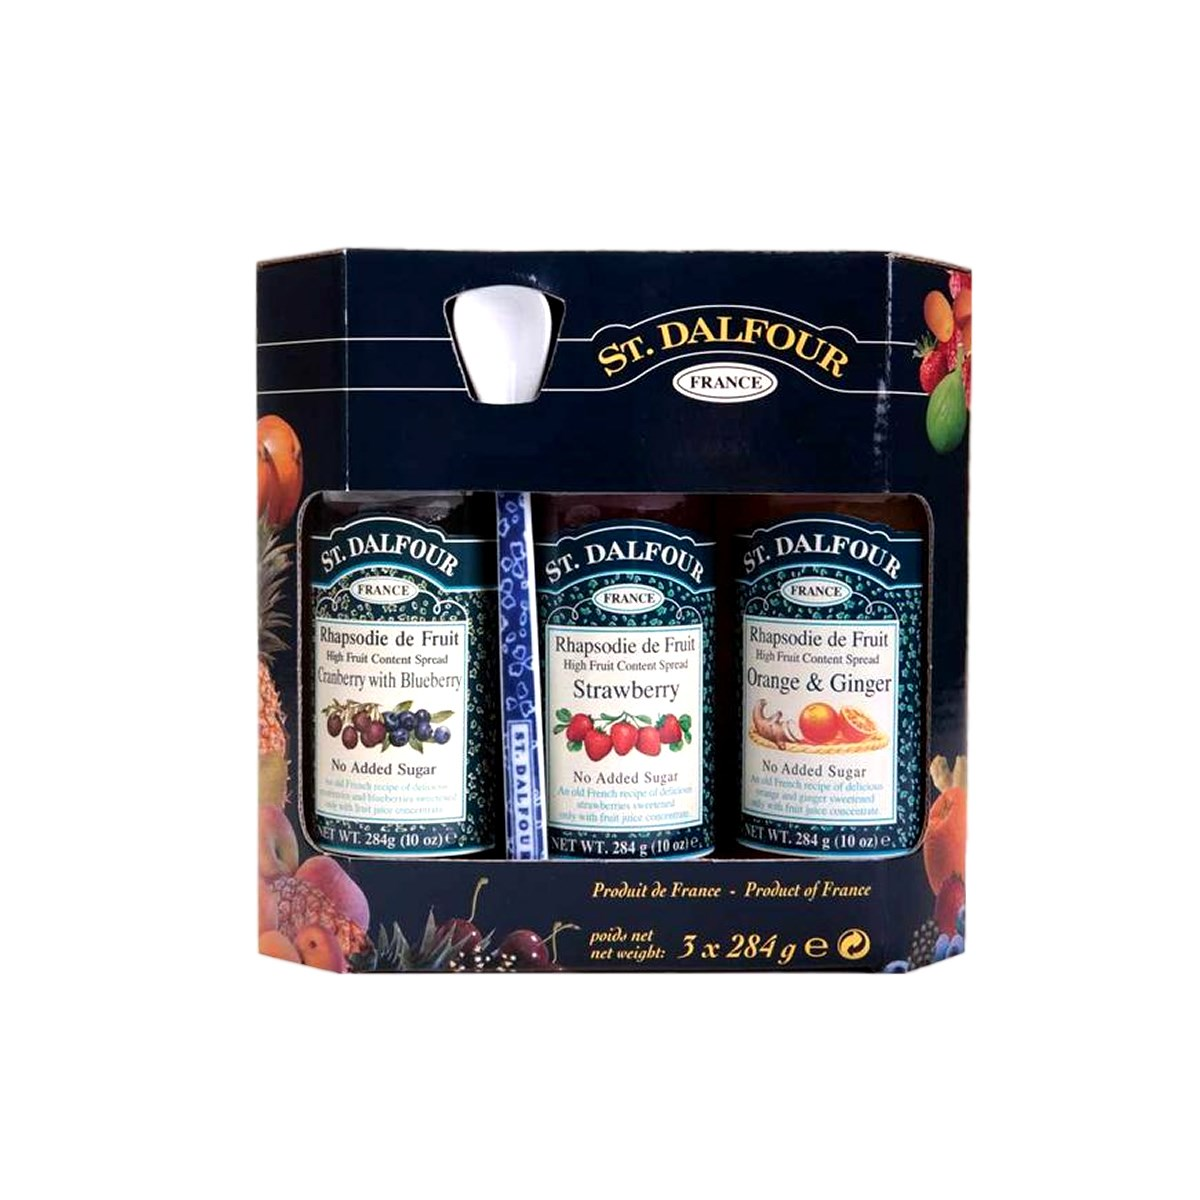 St. Dalfour Fruit Spread Gift Set with Spoon